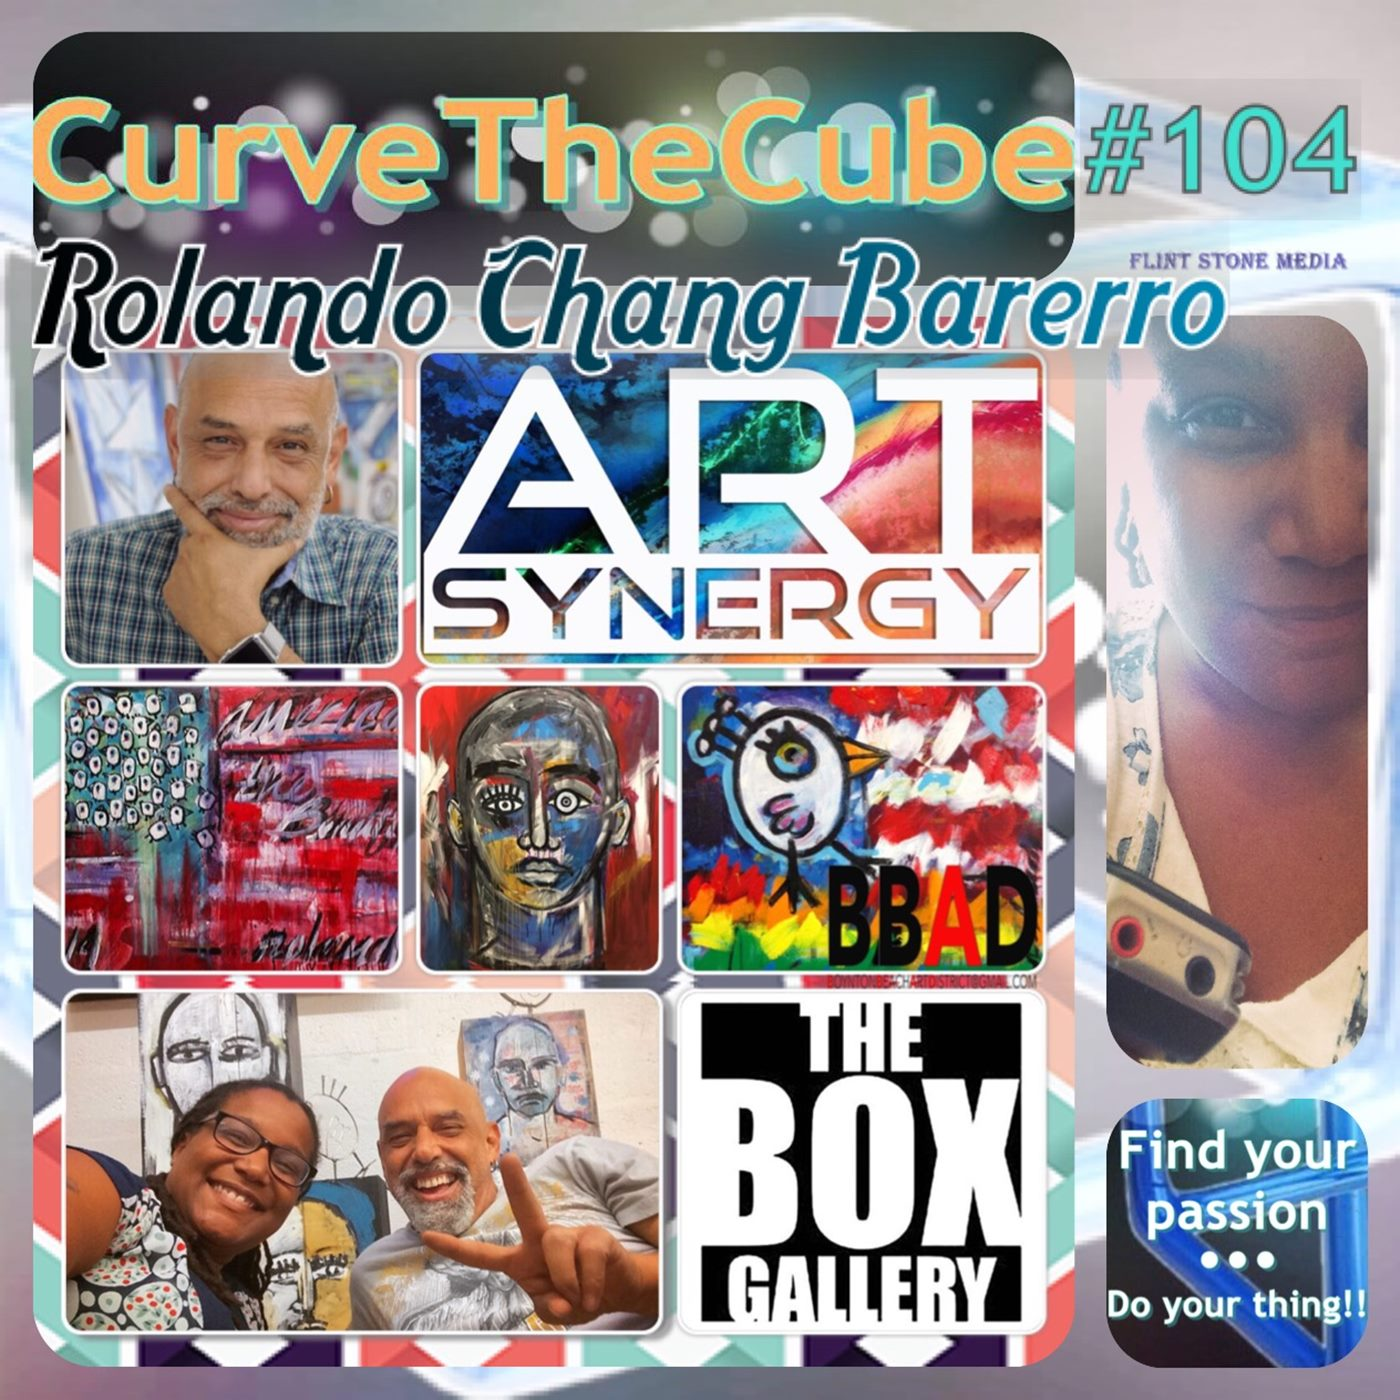 Activist and Artist Rolando Chang Barerro on the Curve the Cube Podcast